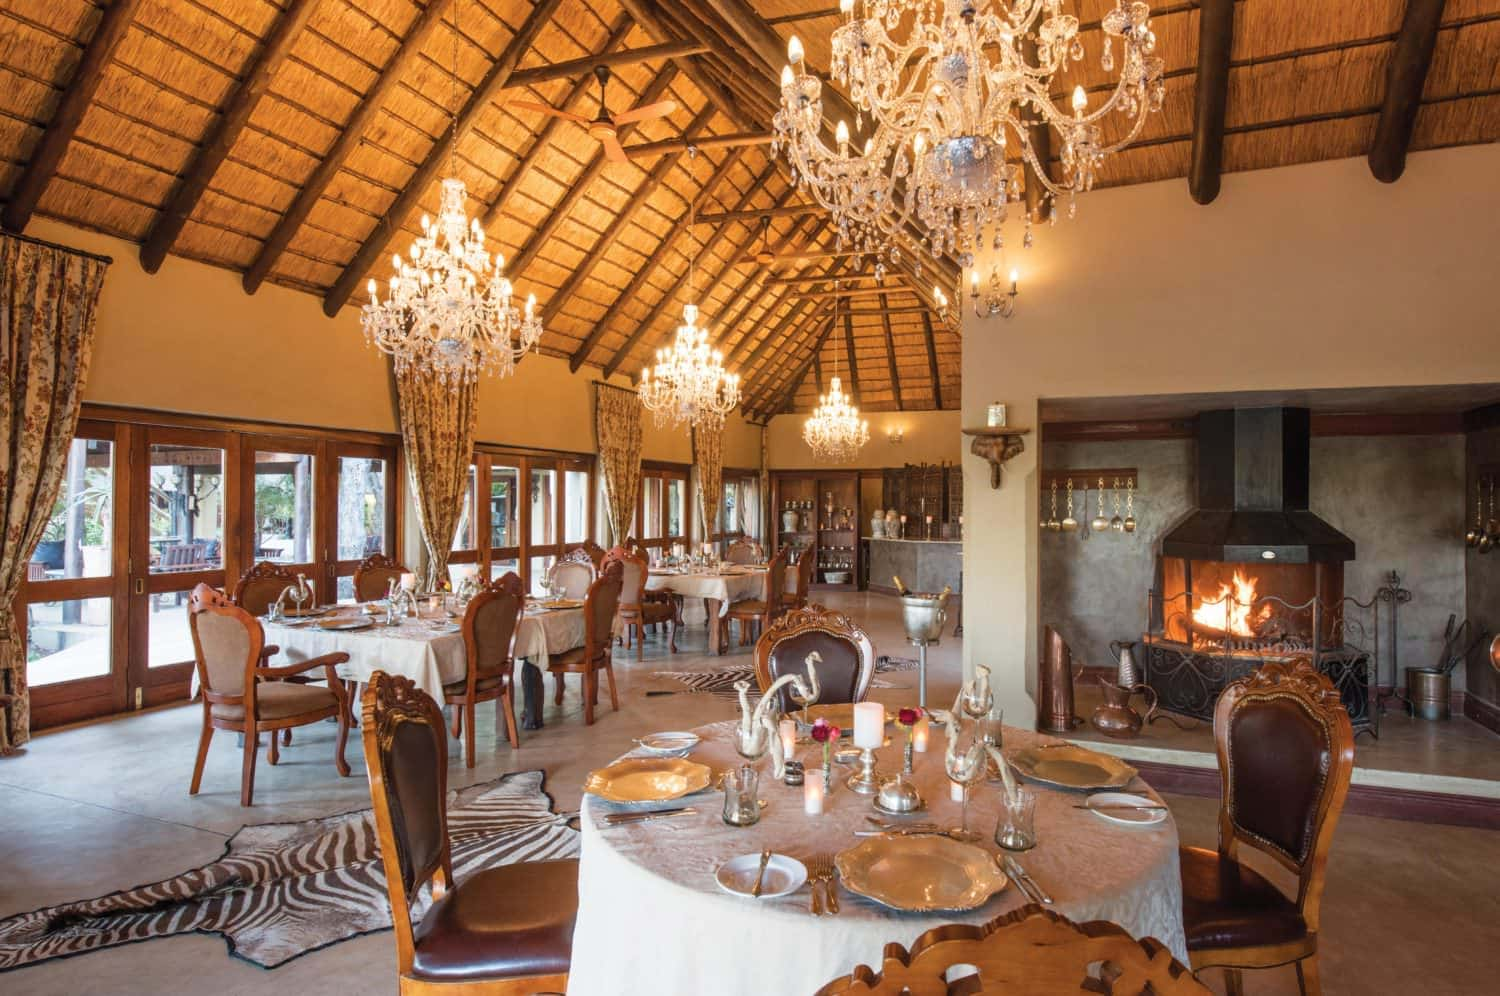 King Camp dining room